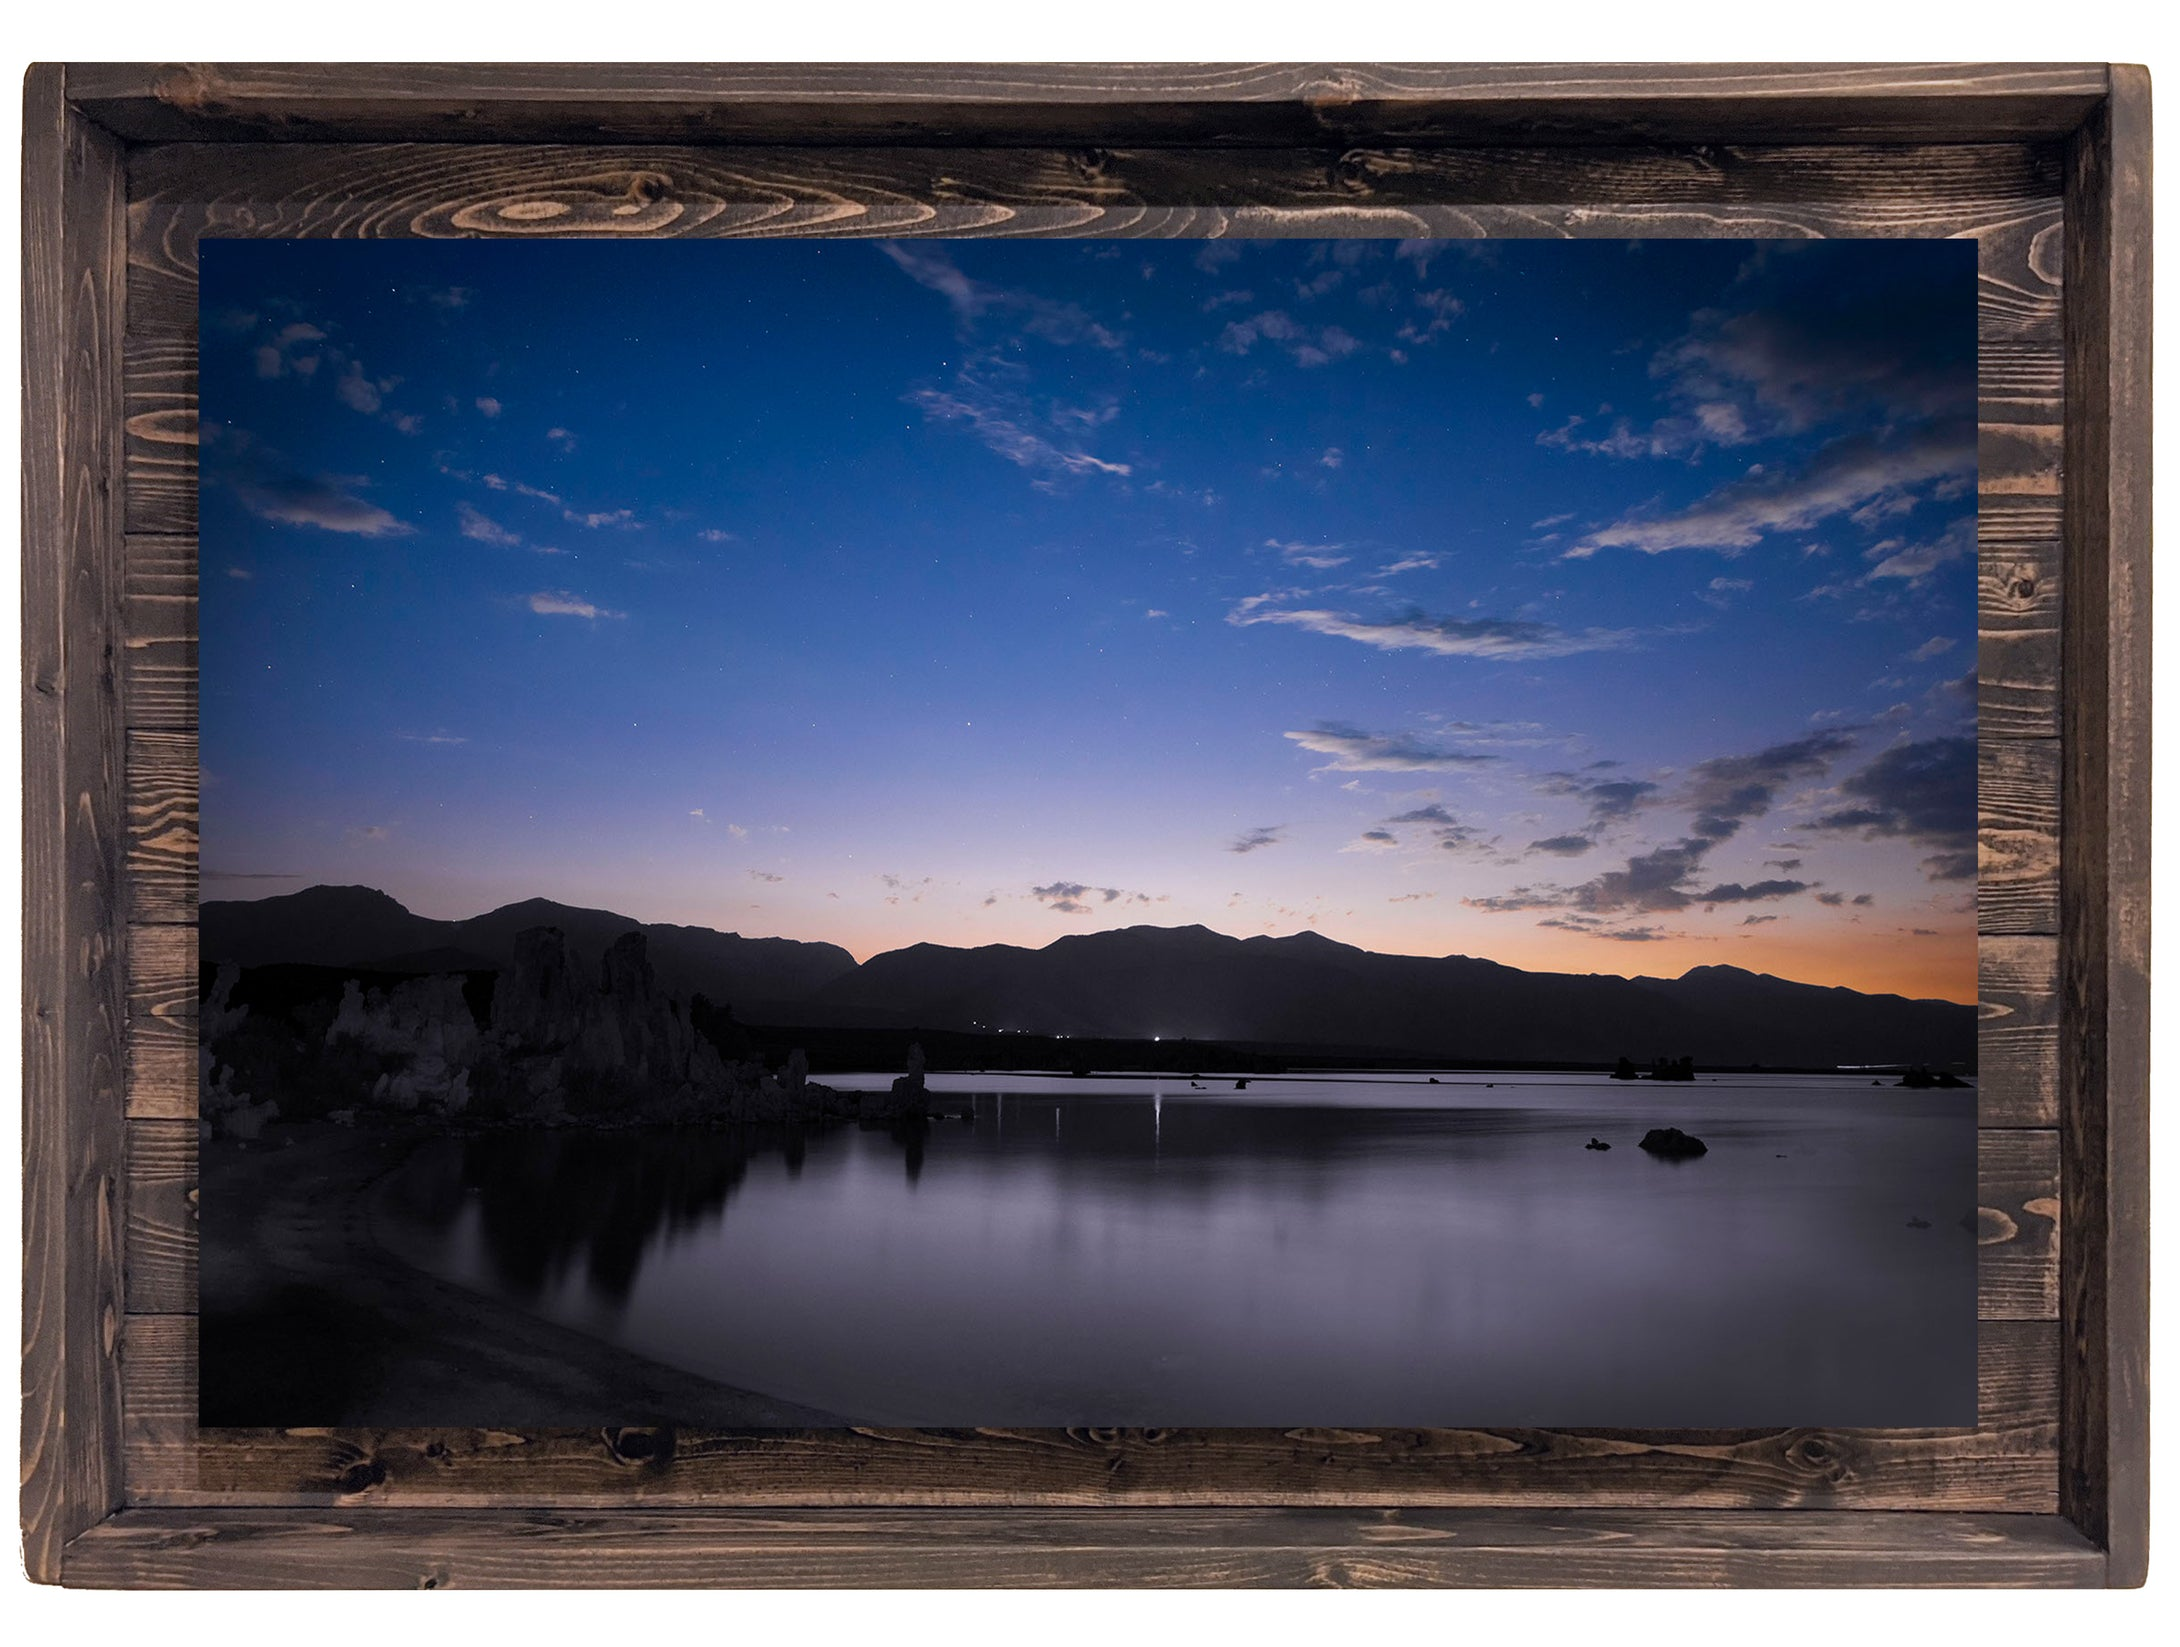 Serene Slumber of the Tufa (Modern Rustic Floating Art Print with Hidden Storage for Jewelry)